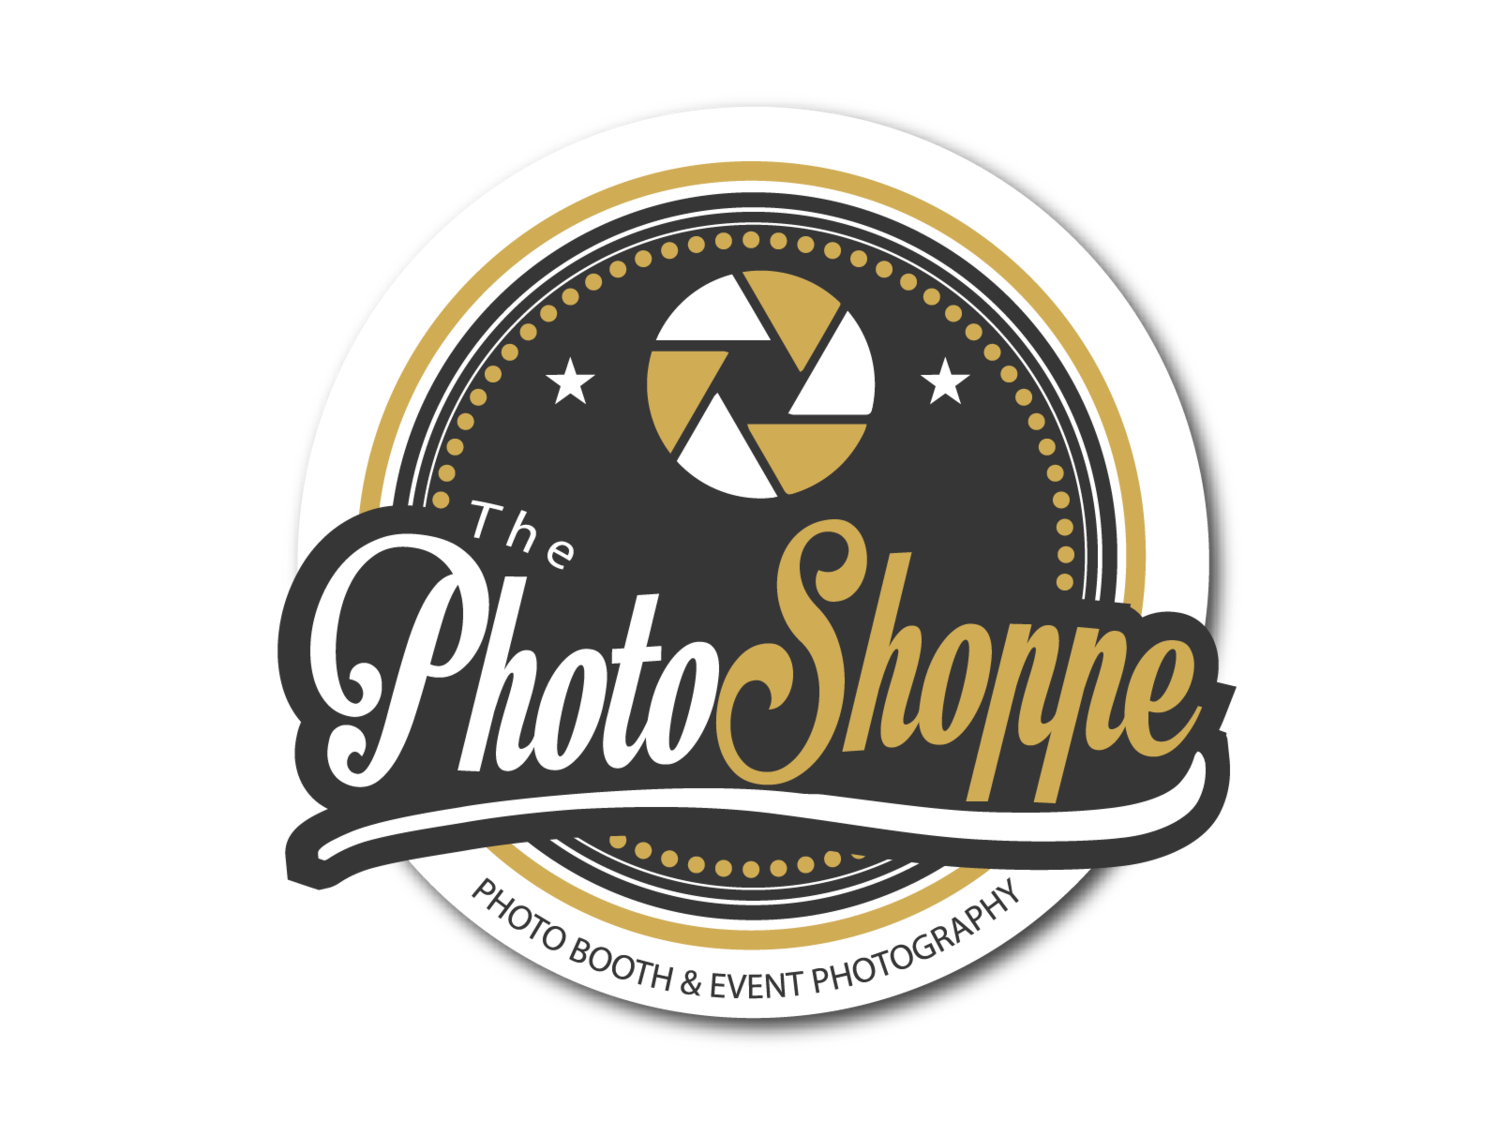 The Photo Shoppe